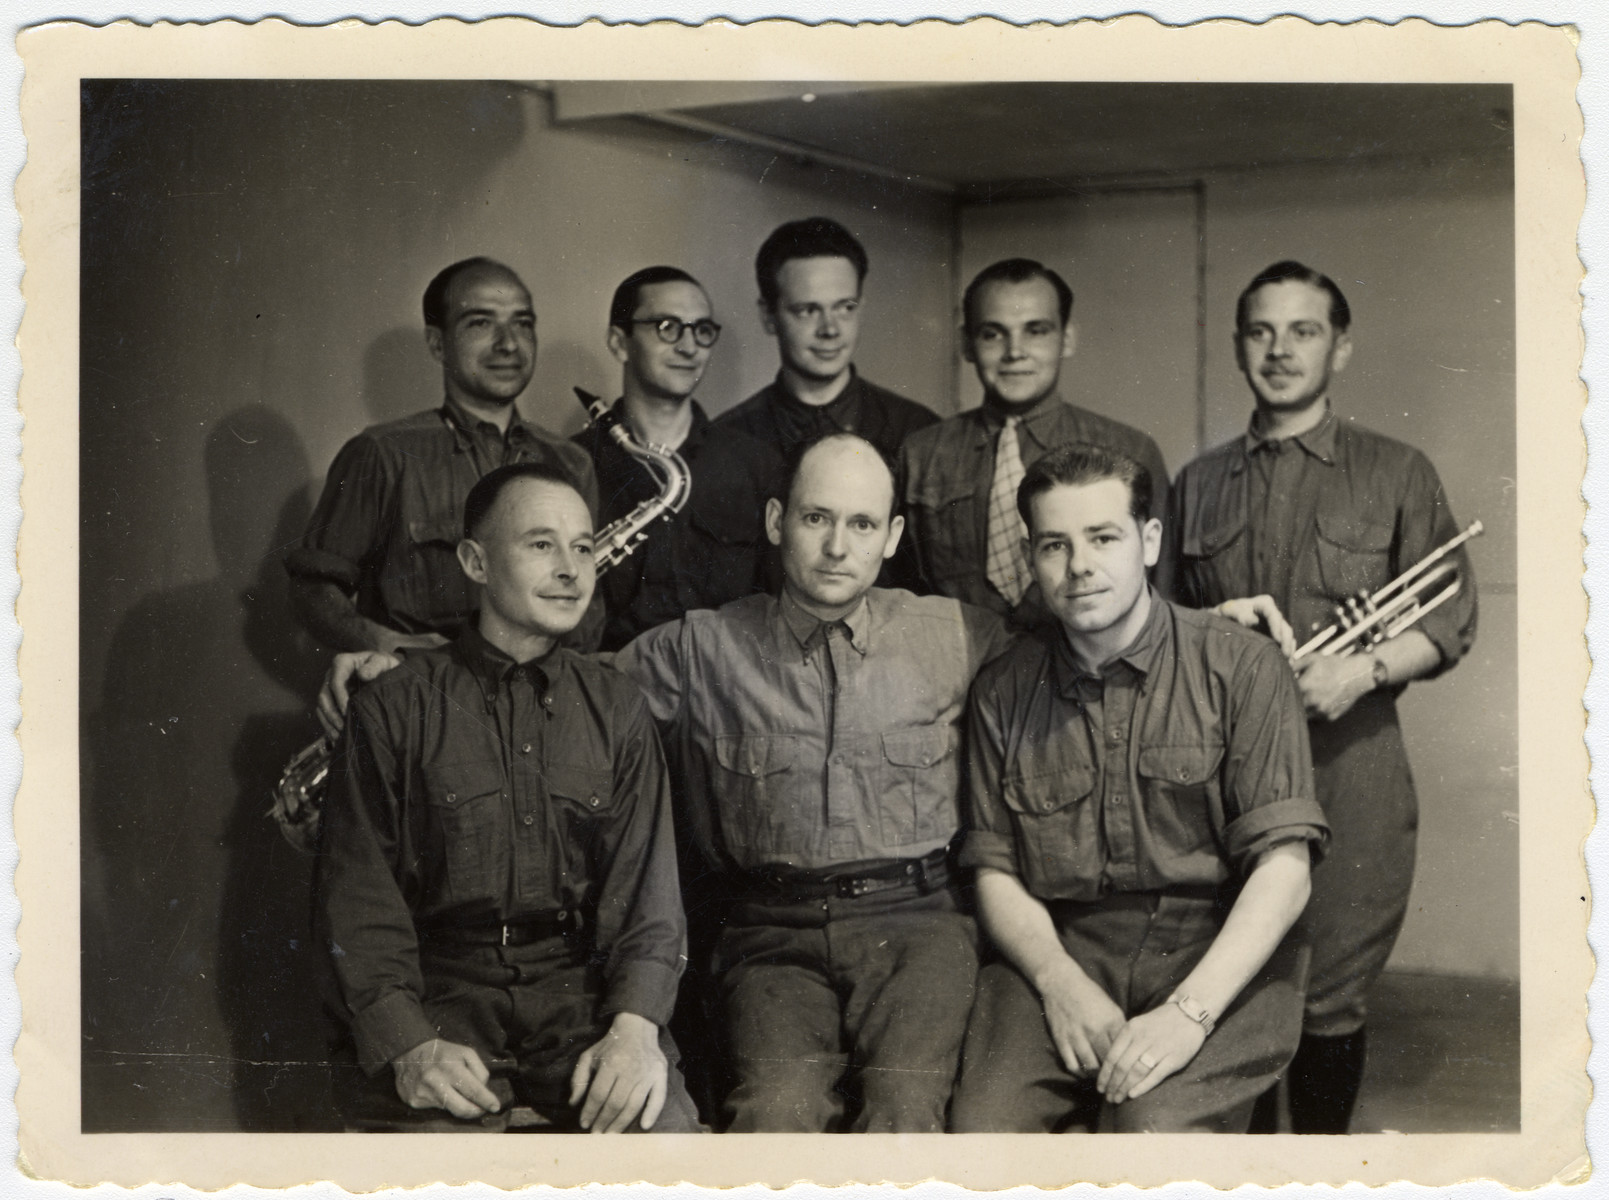 """Group portrait of members of the prisoner orchestra of Stalag VIIIA.  The original caption reads: """"To my comrad Beker as a souvenir of our captivity."""""""